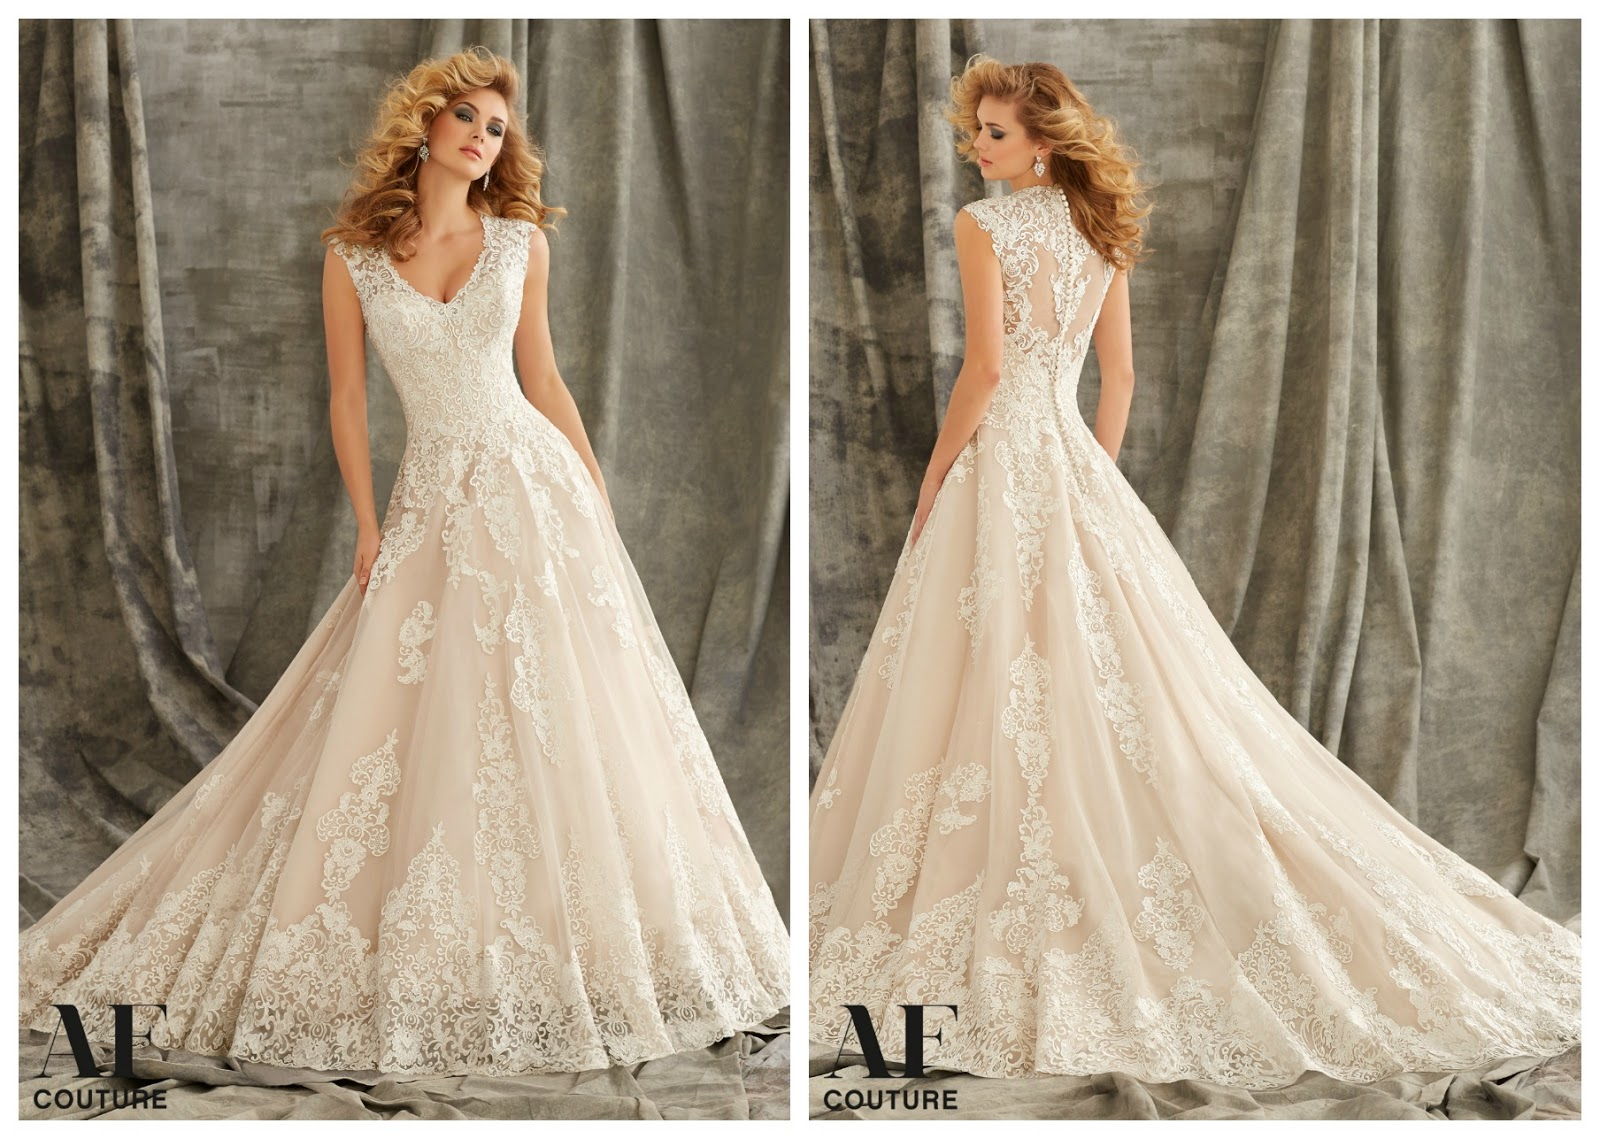 Brides of america online store these 2016 af couture by for Coming to america wedding dress